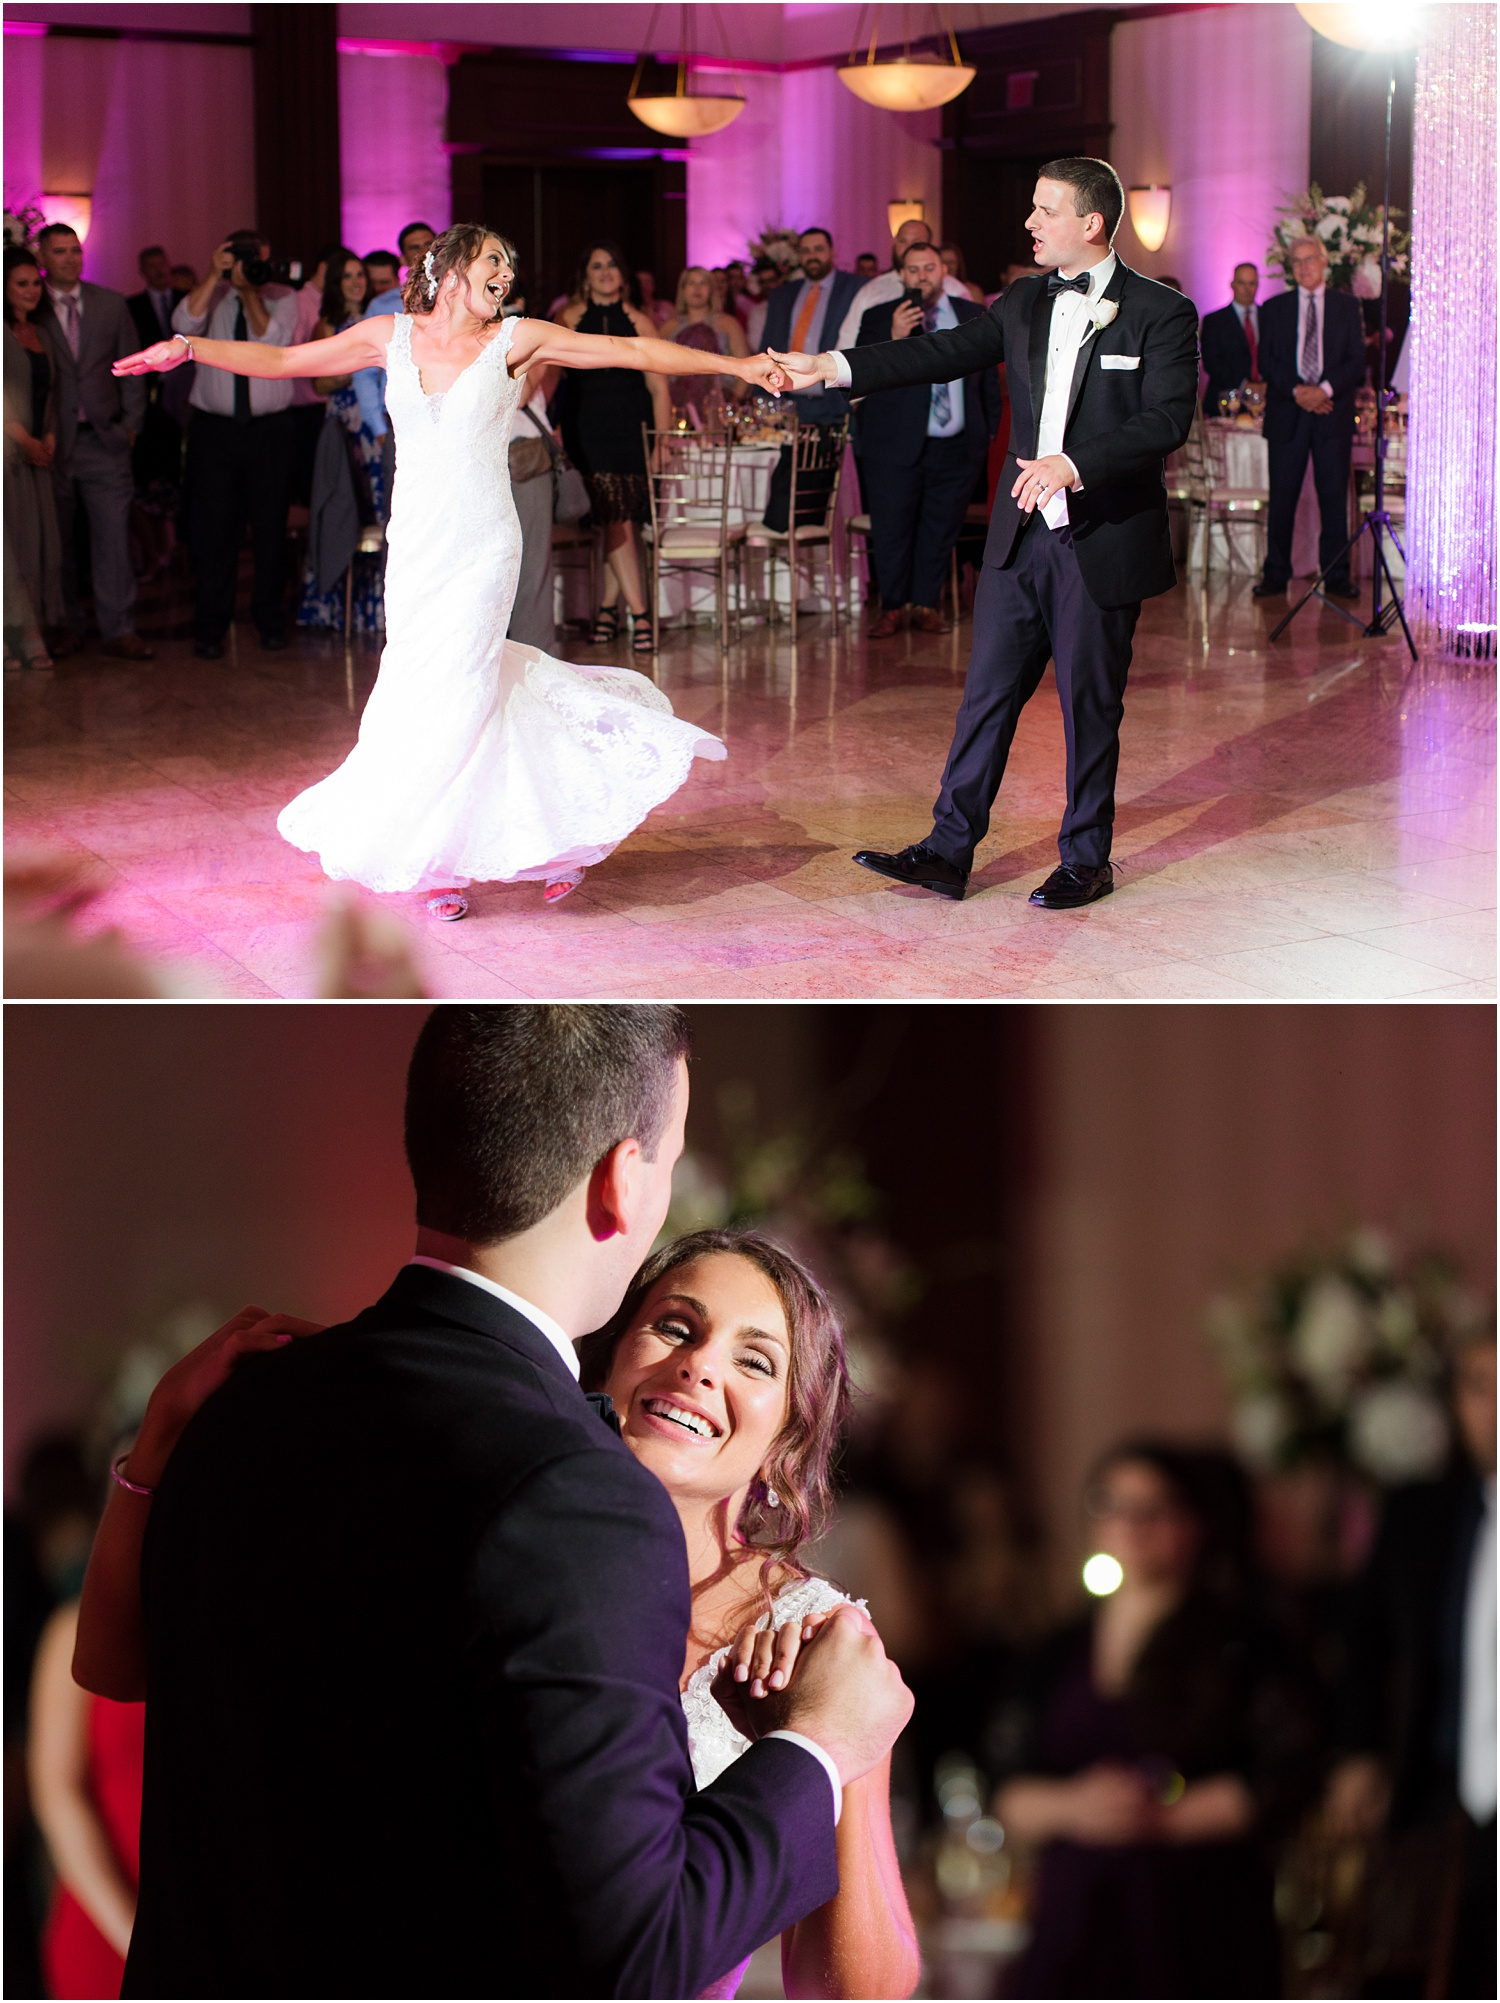 wedding reception first dance at South Gate Manor in Freehold.